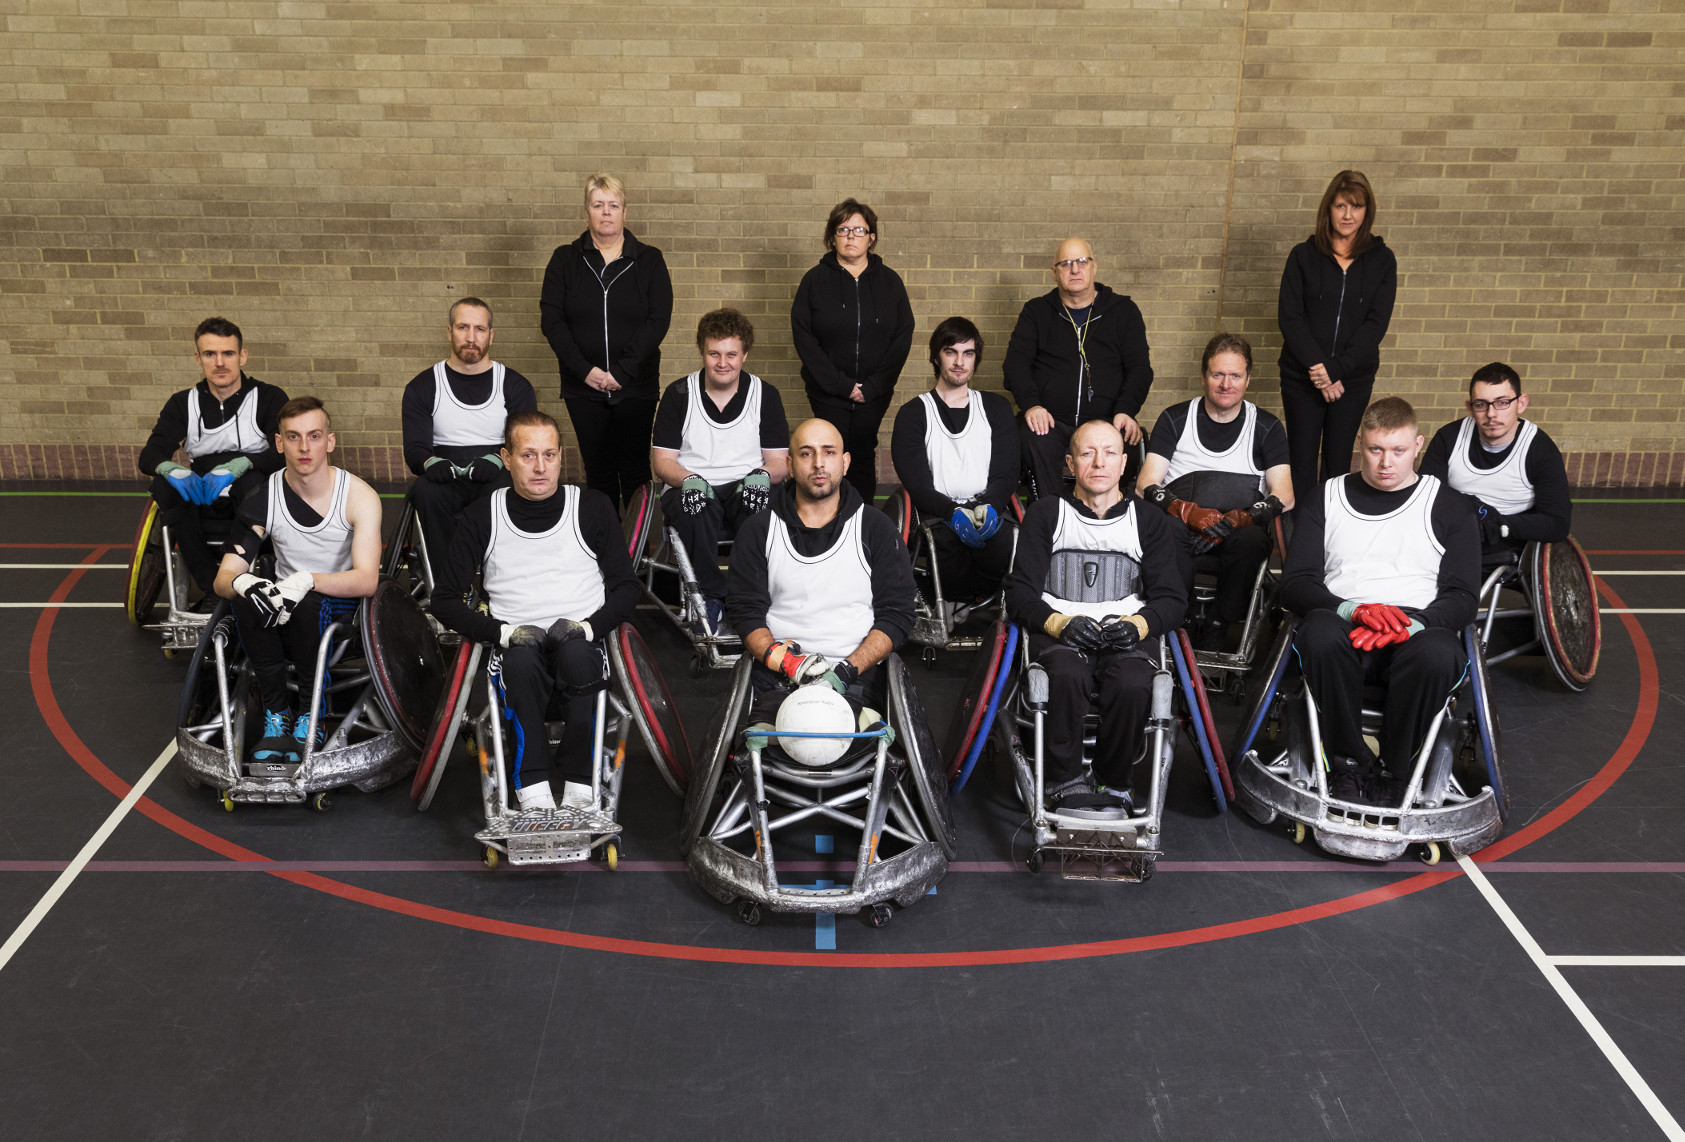 BBC One, Oneness, Wheelchair Rugby, Llantrisant, Photographer: Martin Parr